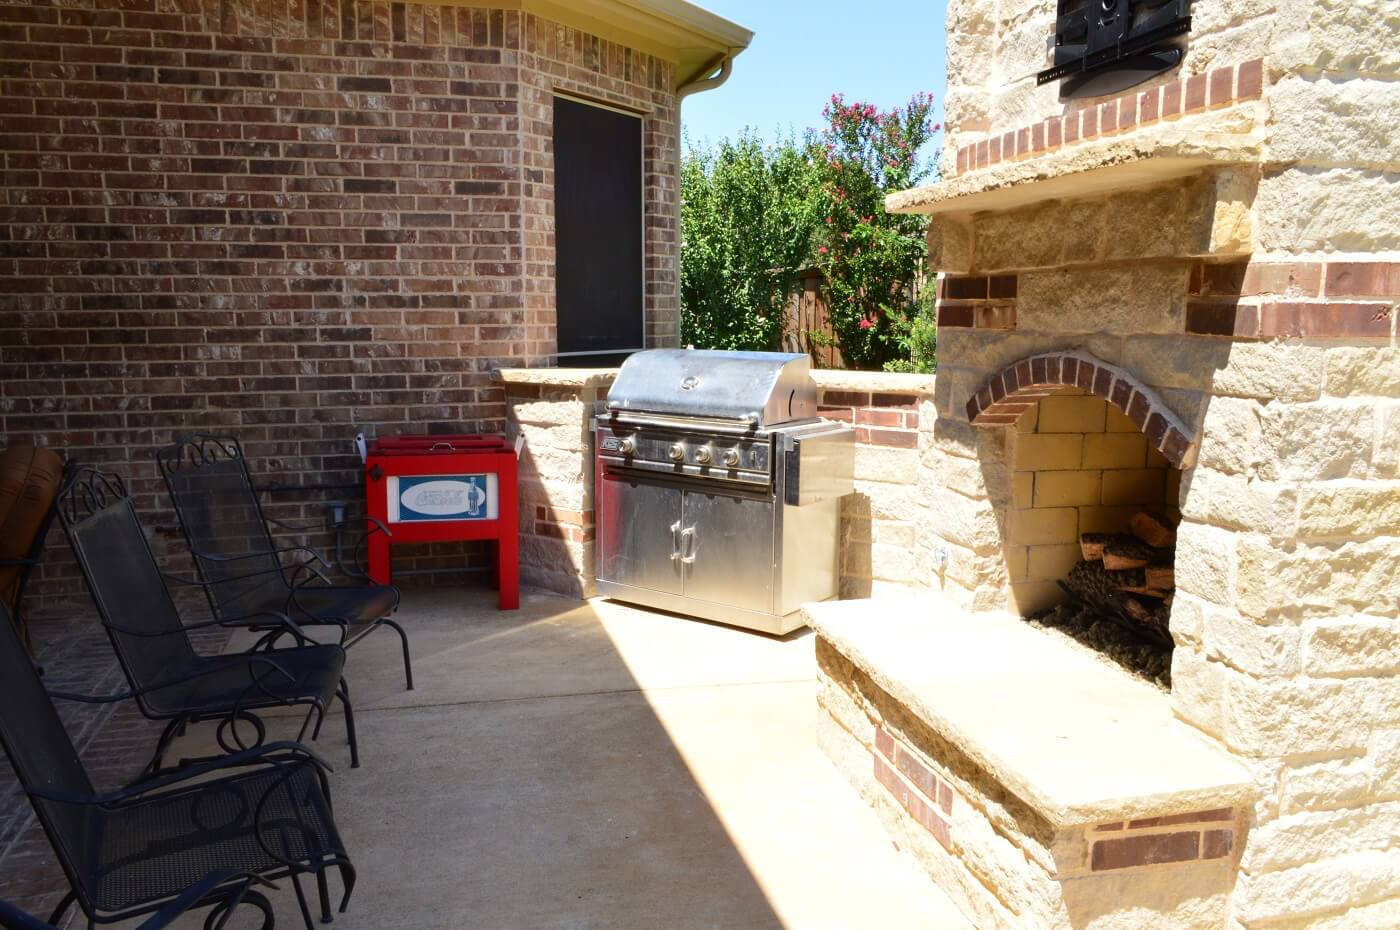 Outdoor kitchen and seating area